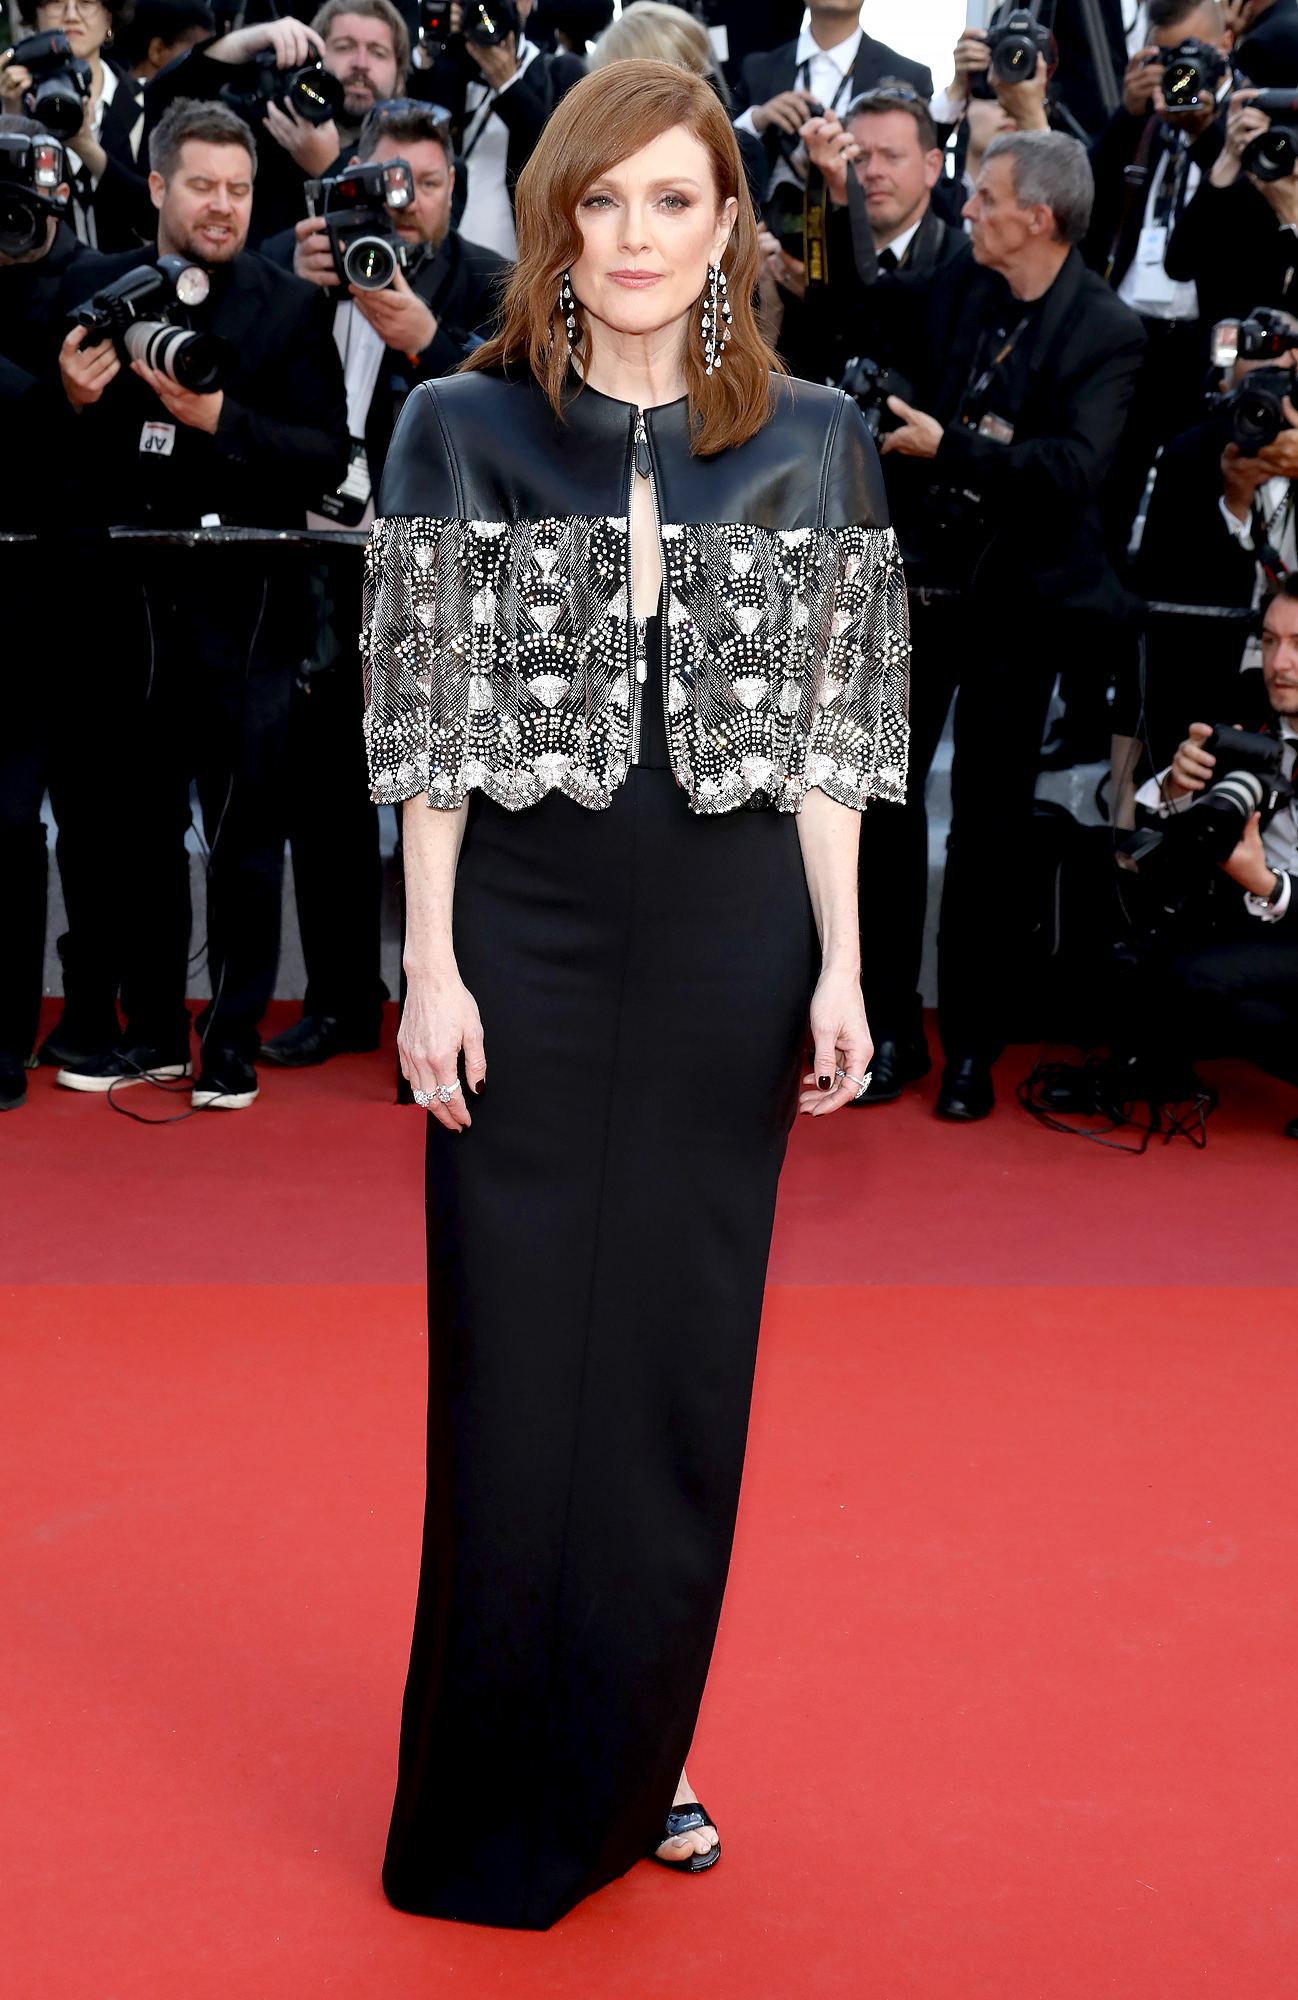 Julianne-Moore-Cannes-Festival - A leather and lace caplet proved to be the perfect complement to the actress' black Louis Vuitton gown at the Les Miserables premiere on Wednesday, May 15.